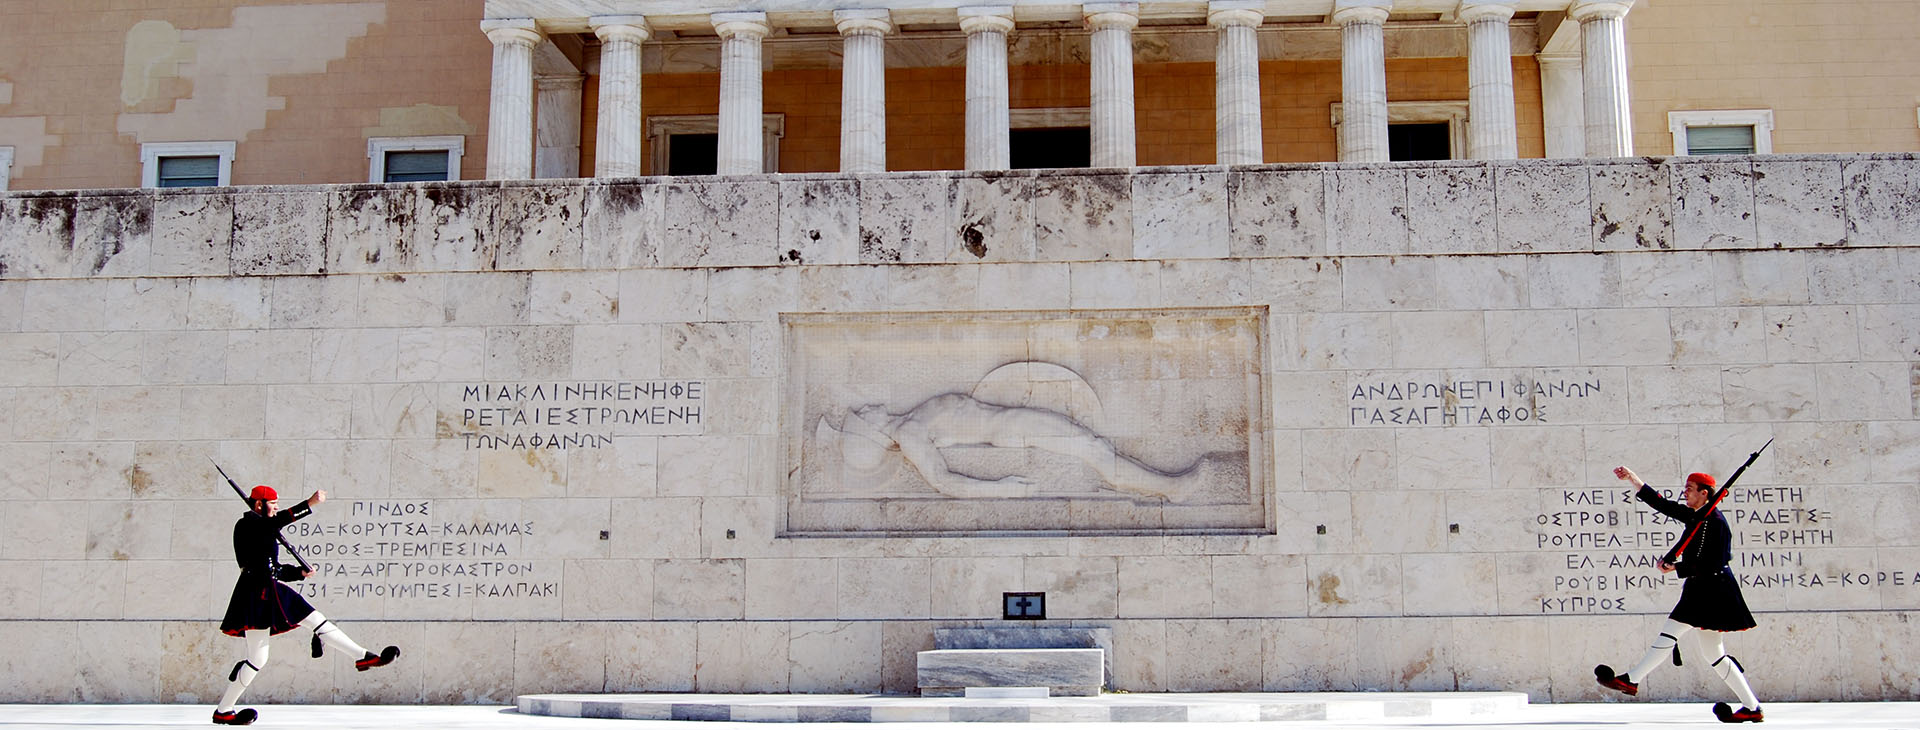 Syntagma Square - Tomb of the Unknown Soldier, Athens